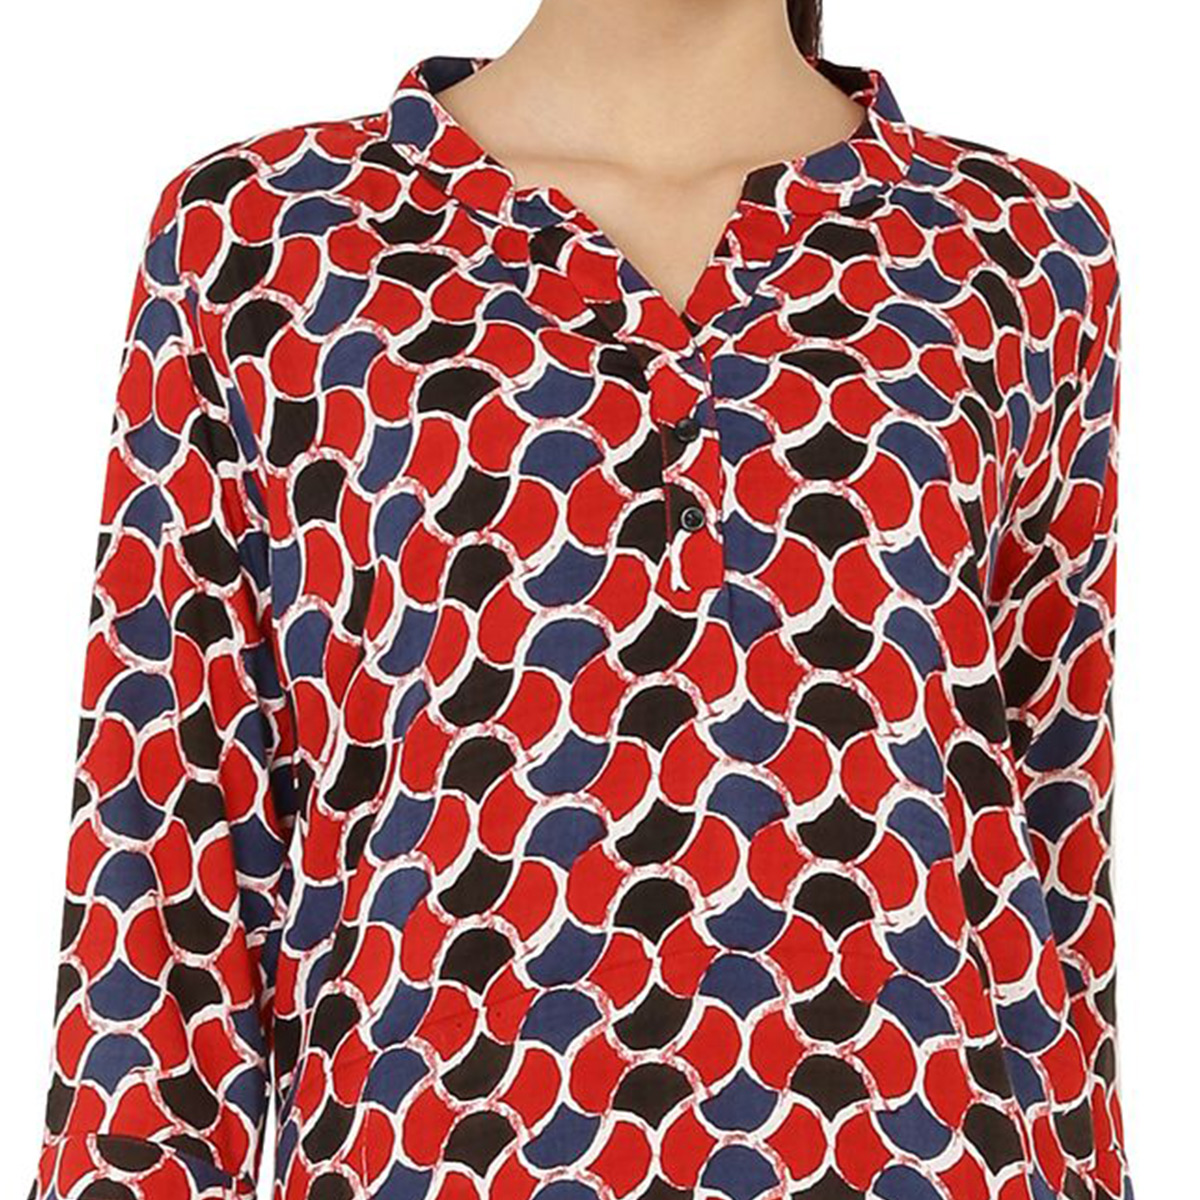 Chimpaaanzee - Red Colored Casual Printed Viscose Top